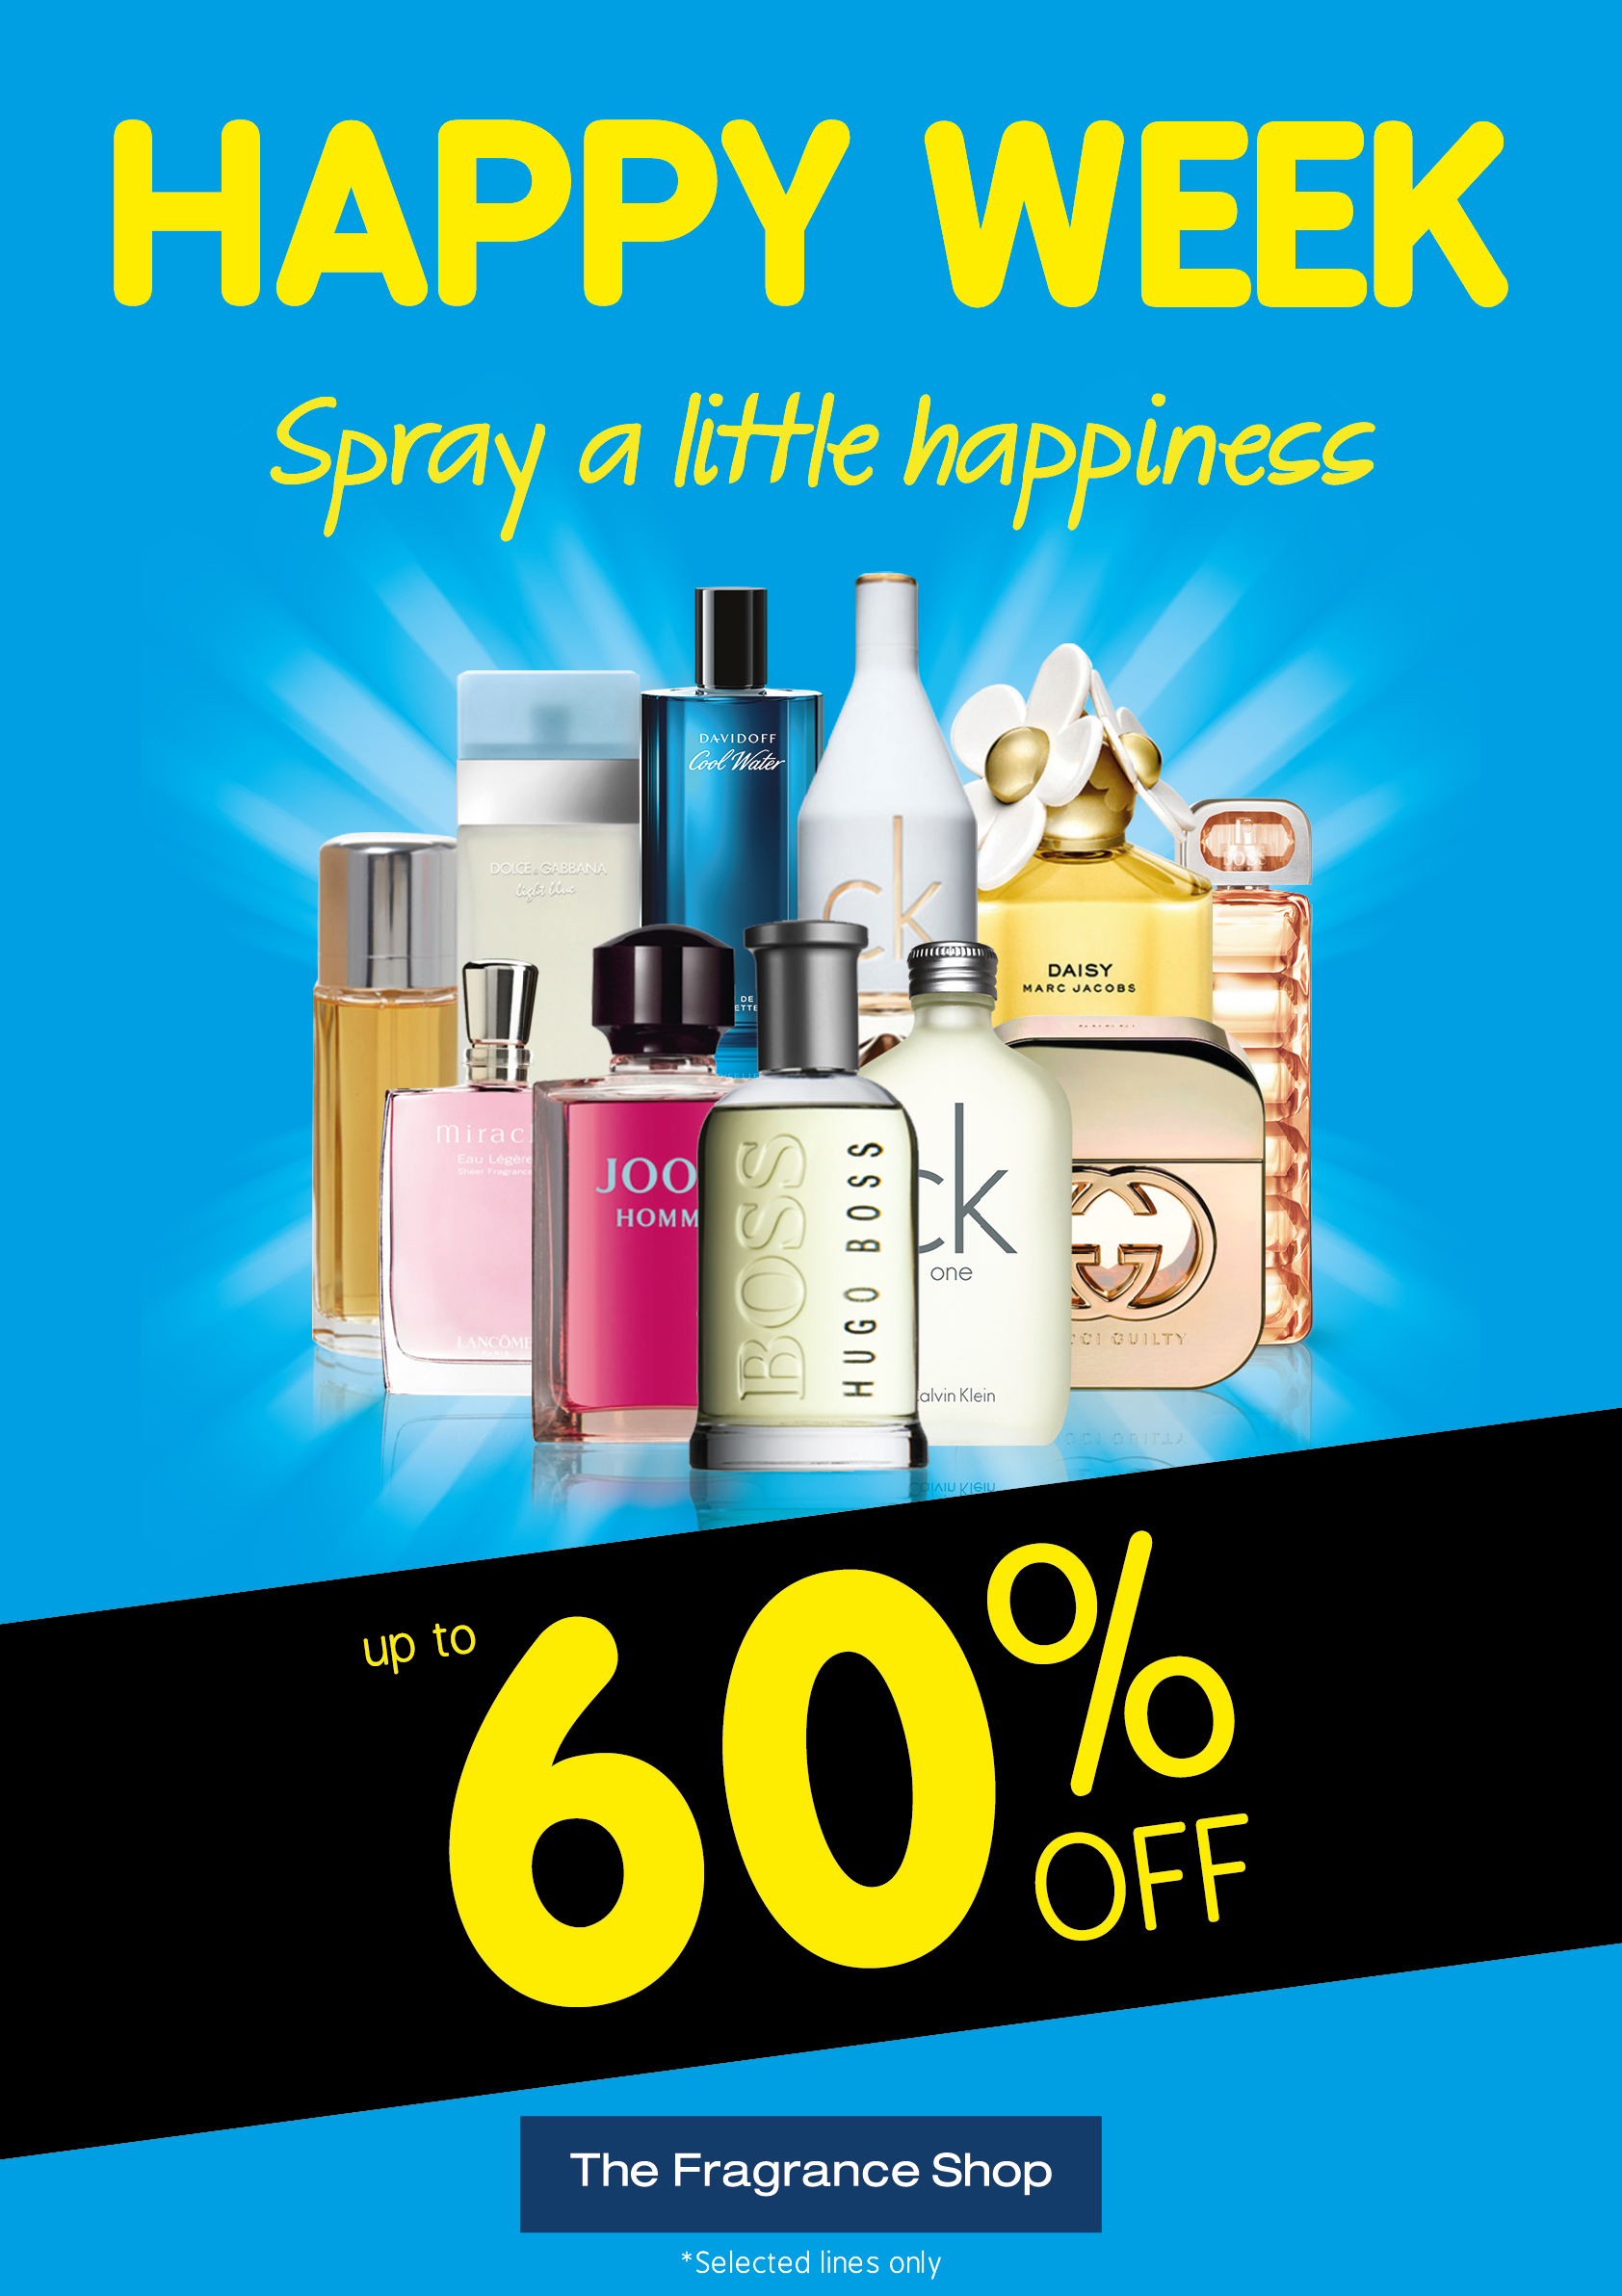 The Fragrance Shop with up to 60% off during Happy Week